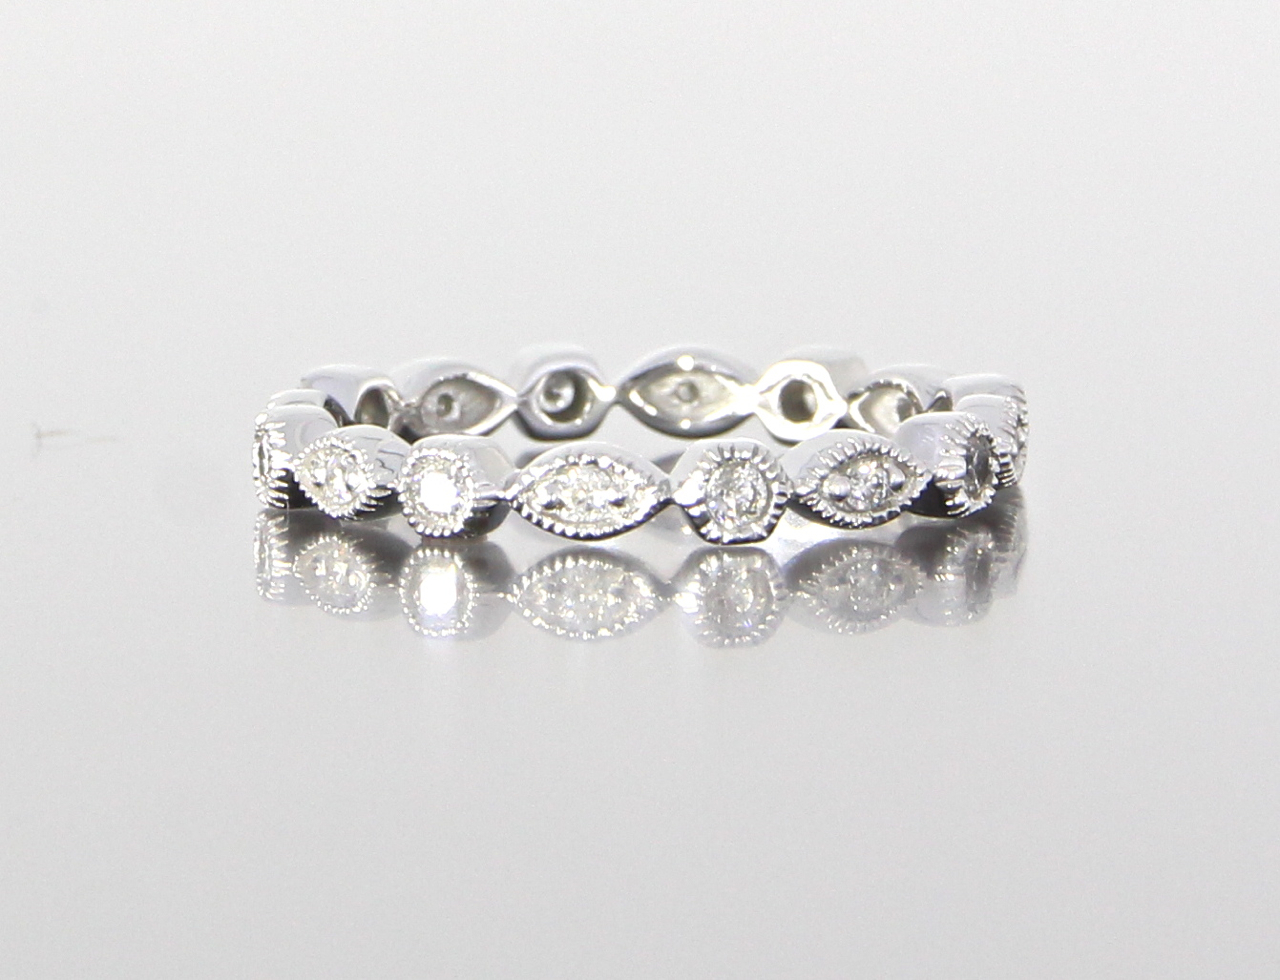 unique-dainty-delicate-diamond-eternity-band-white-gold-craft-revival-jewelry-store-grand-rapids